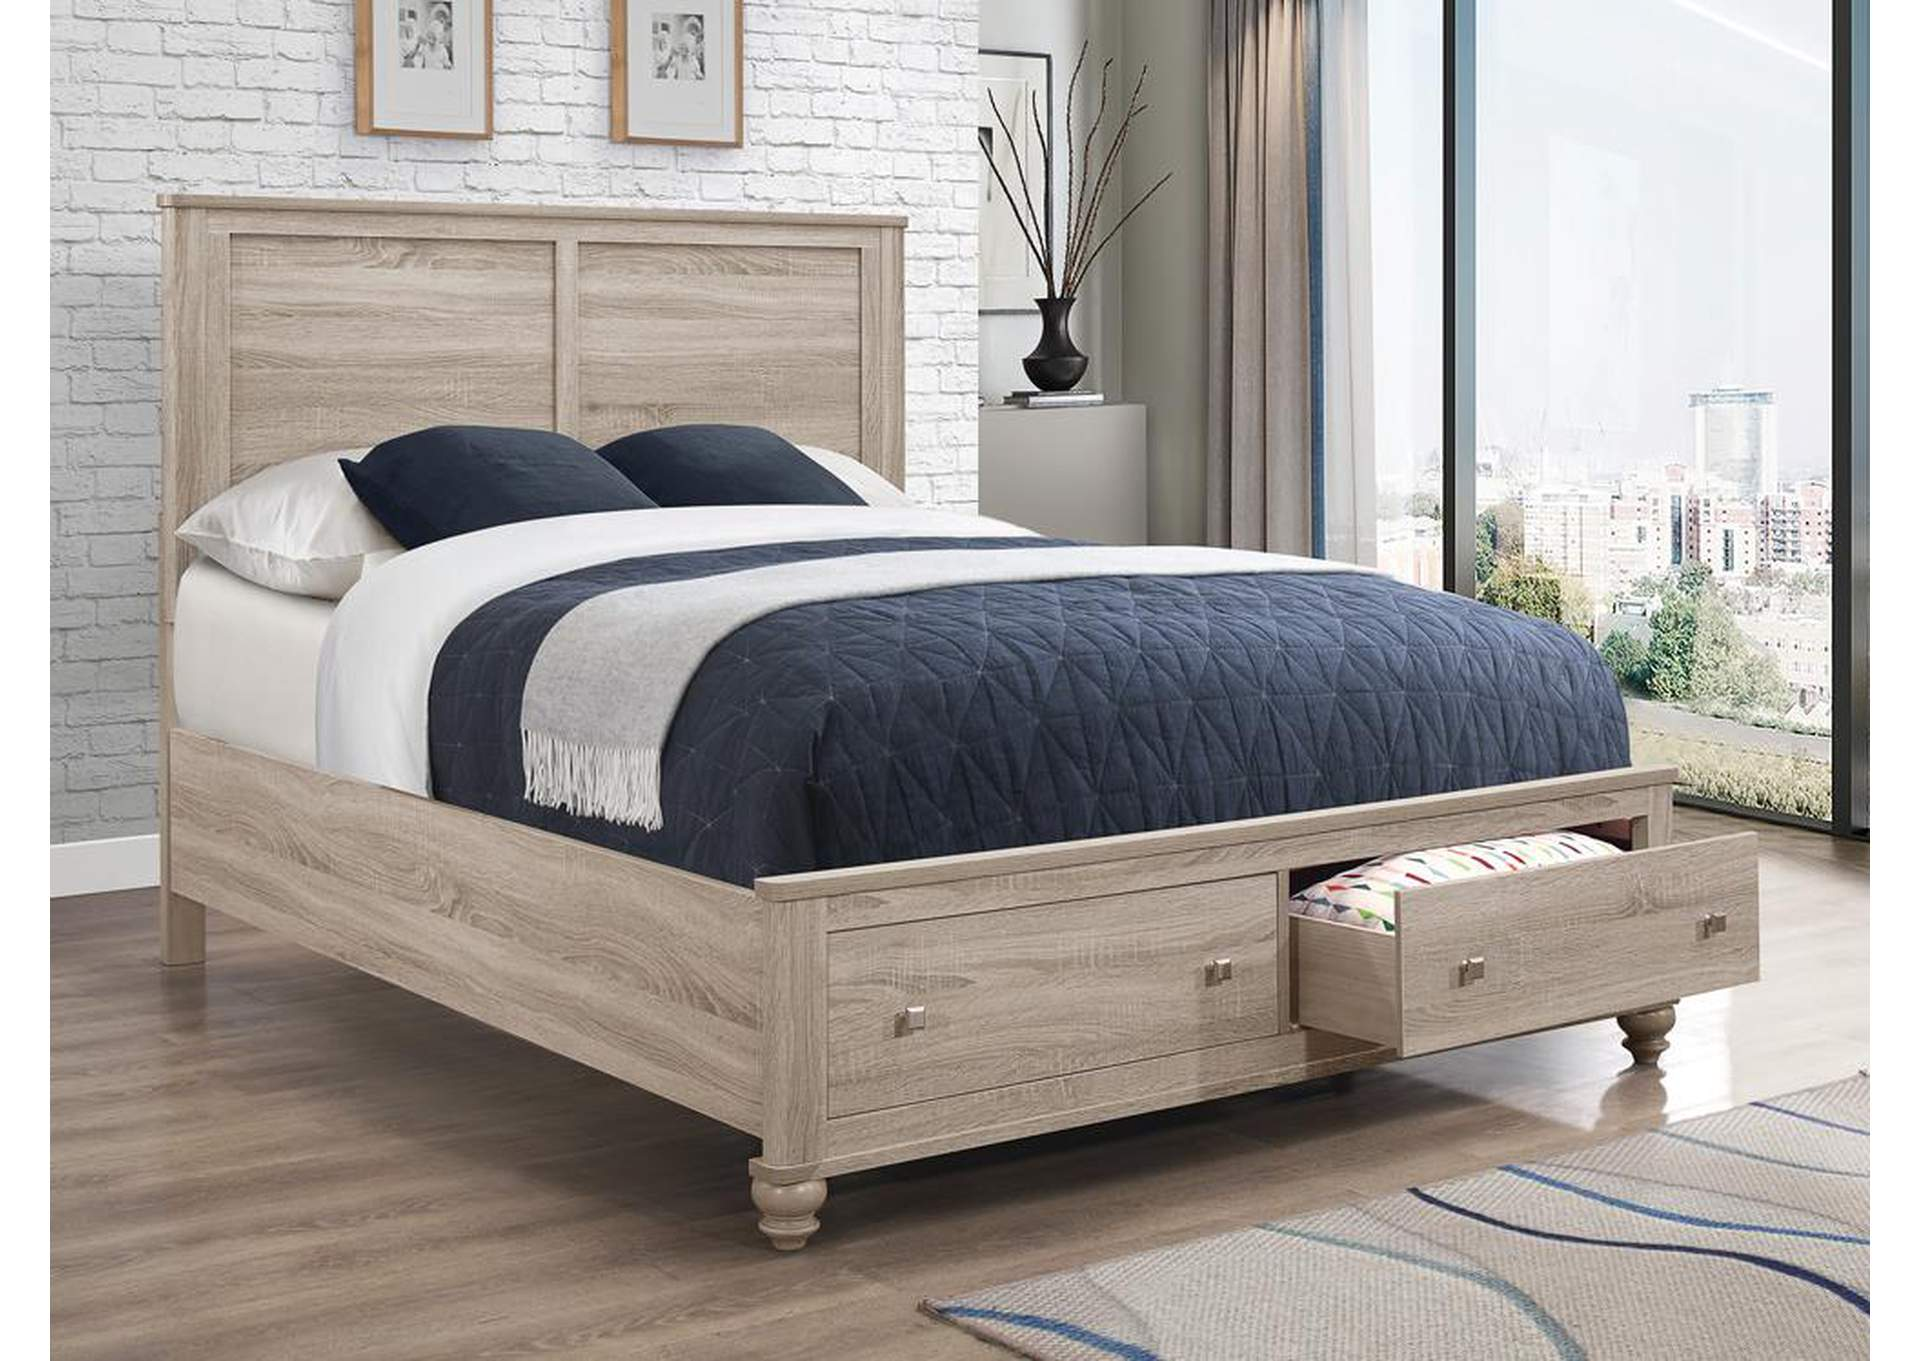 Wenham Natural Oak Queen Storage Bed,Coaster Furniture